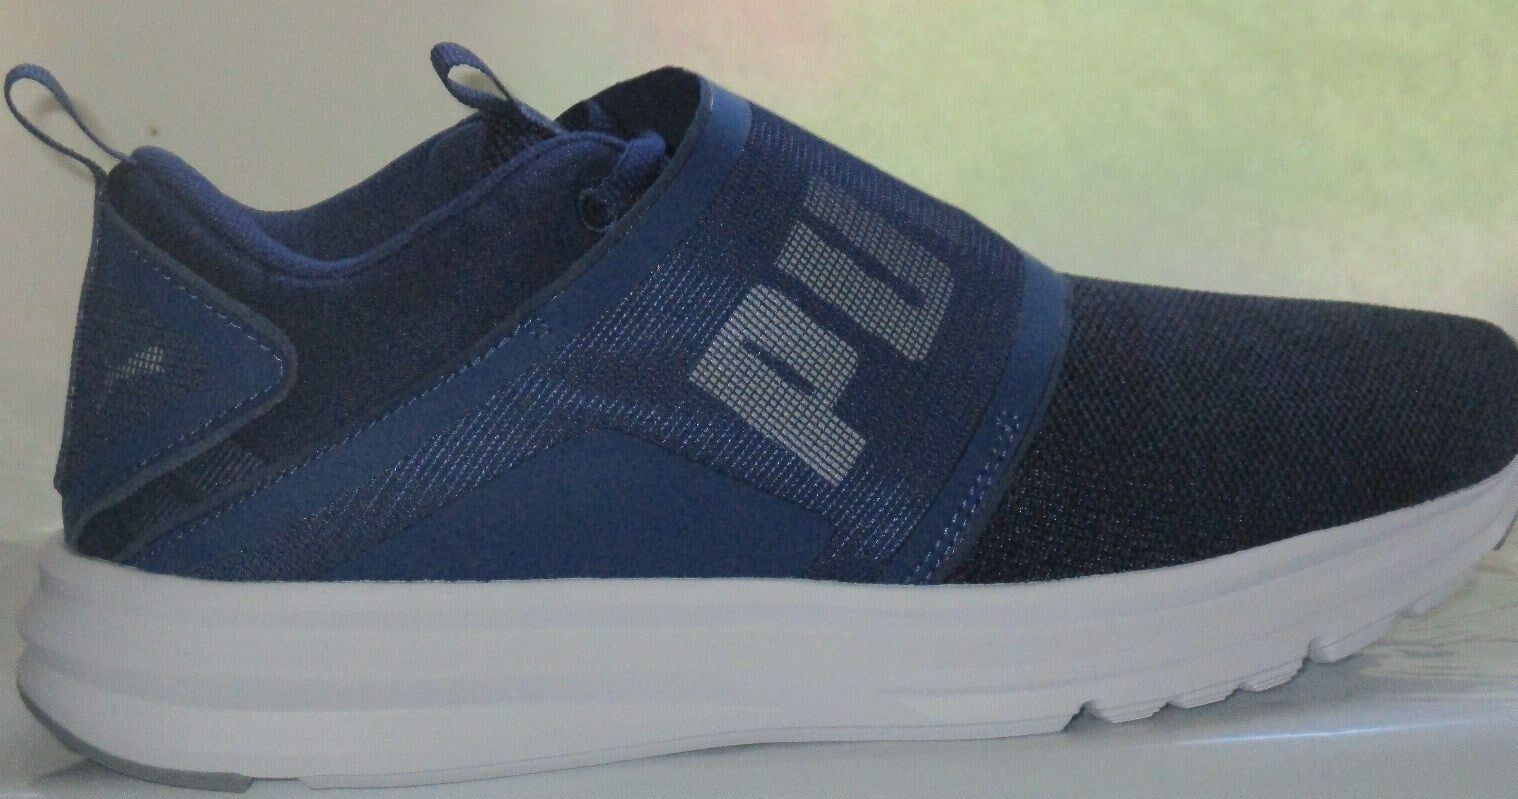 MEN'S PUMA ENZO STRAP KNIT ATHLETIC WALKING BLUE DEPTHS-BLAC SHOES SIZE 11